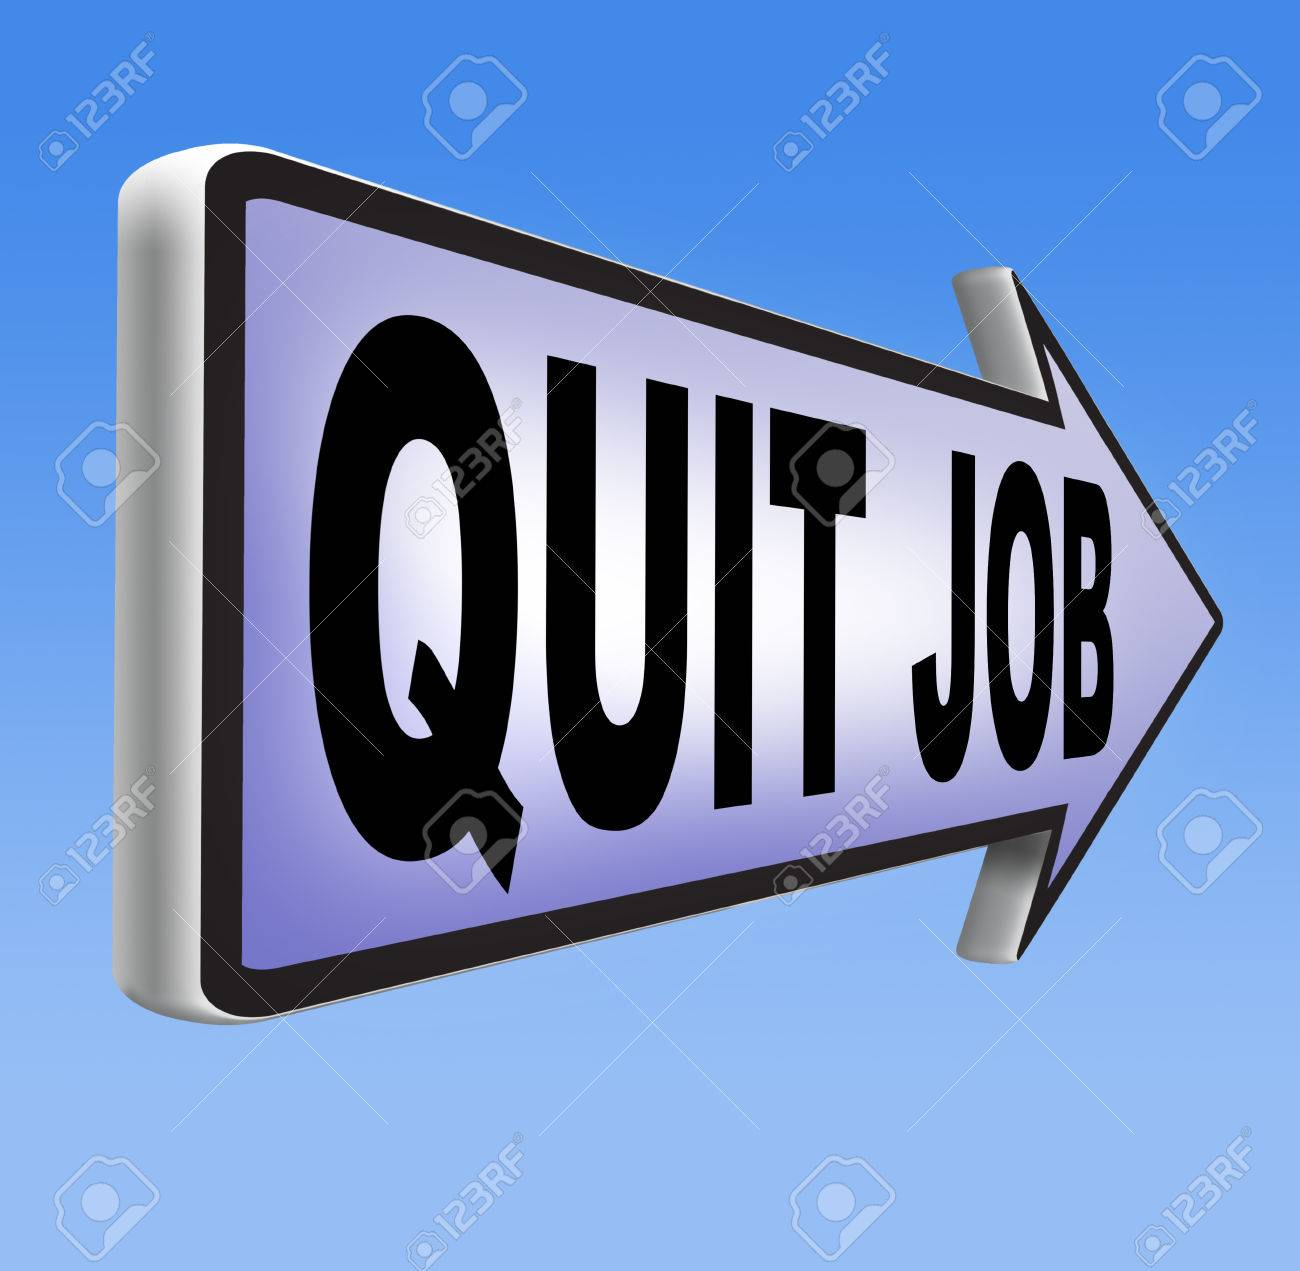 quit job change profession resigning from work and getting stock photo quit job change profession resigning from work and getting unemployed